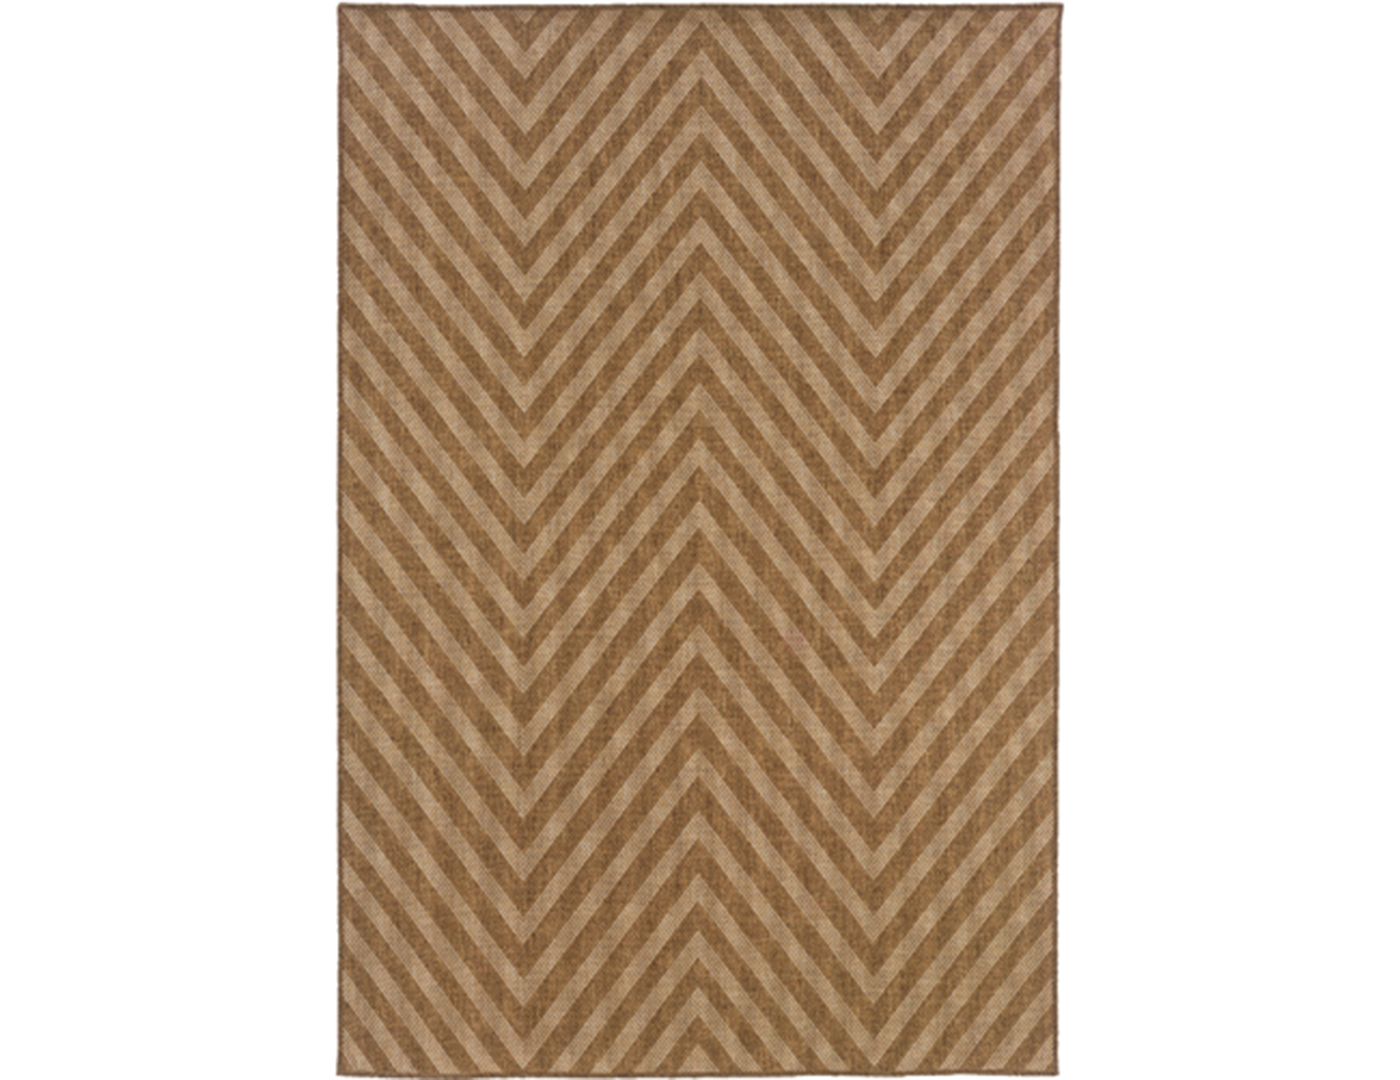 Natural Chevron Rug